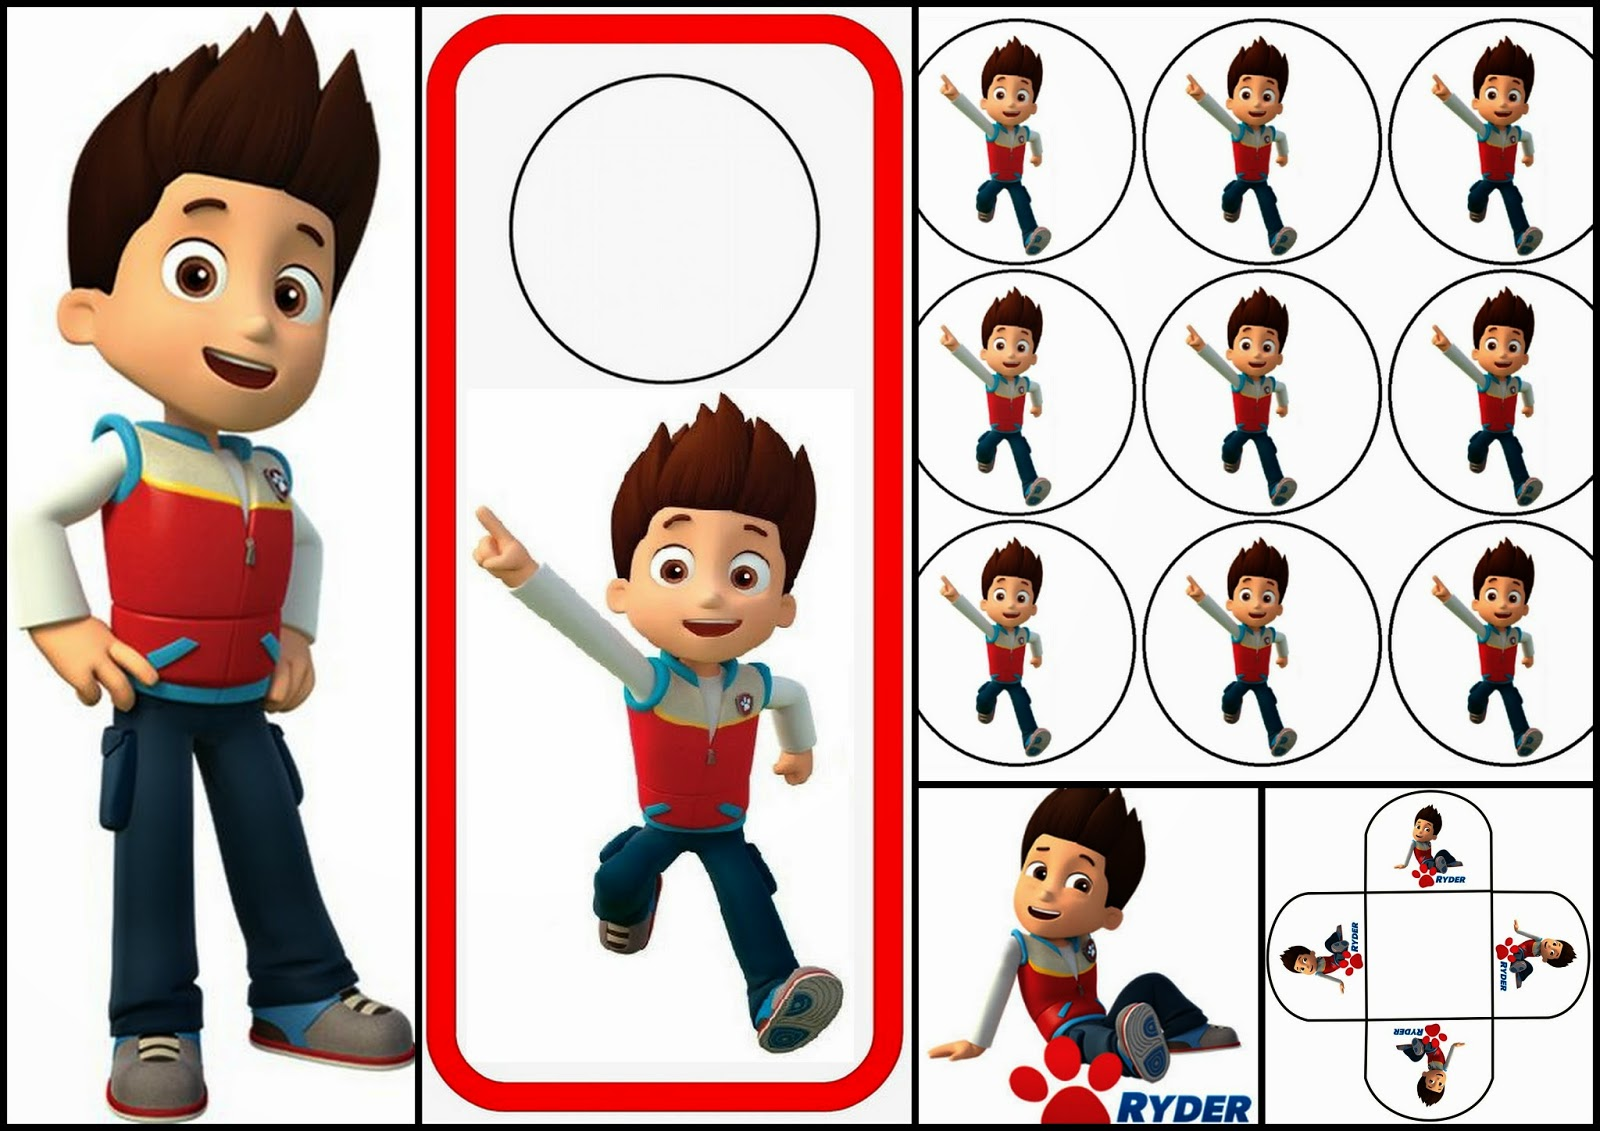 Paw Patrol: Ryder Free Printable Mini Kit.